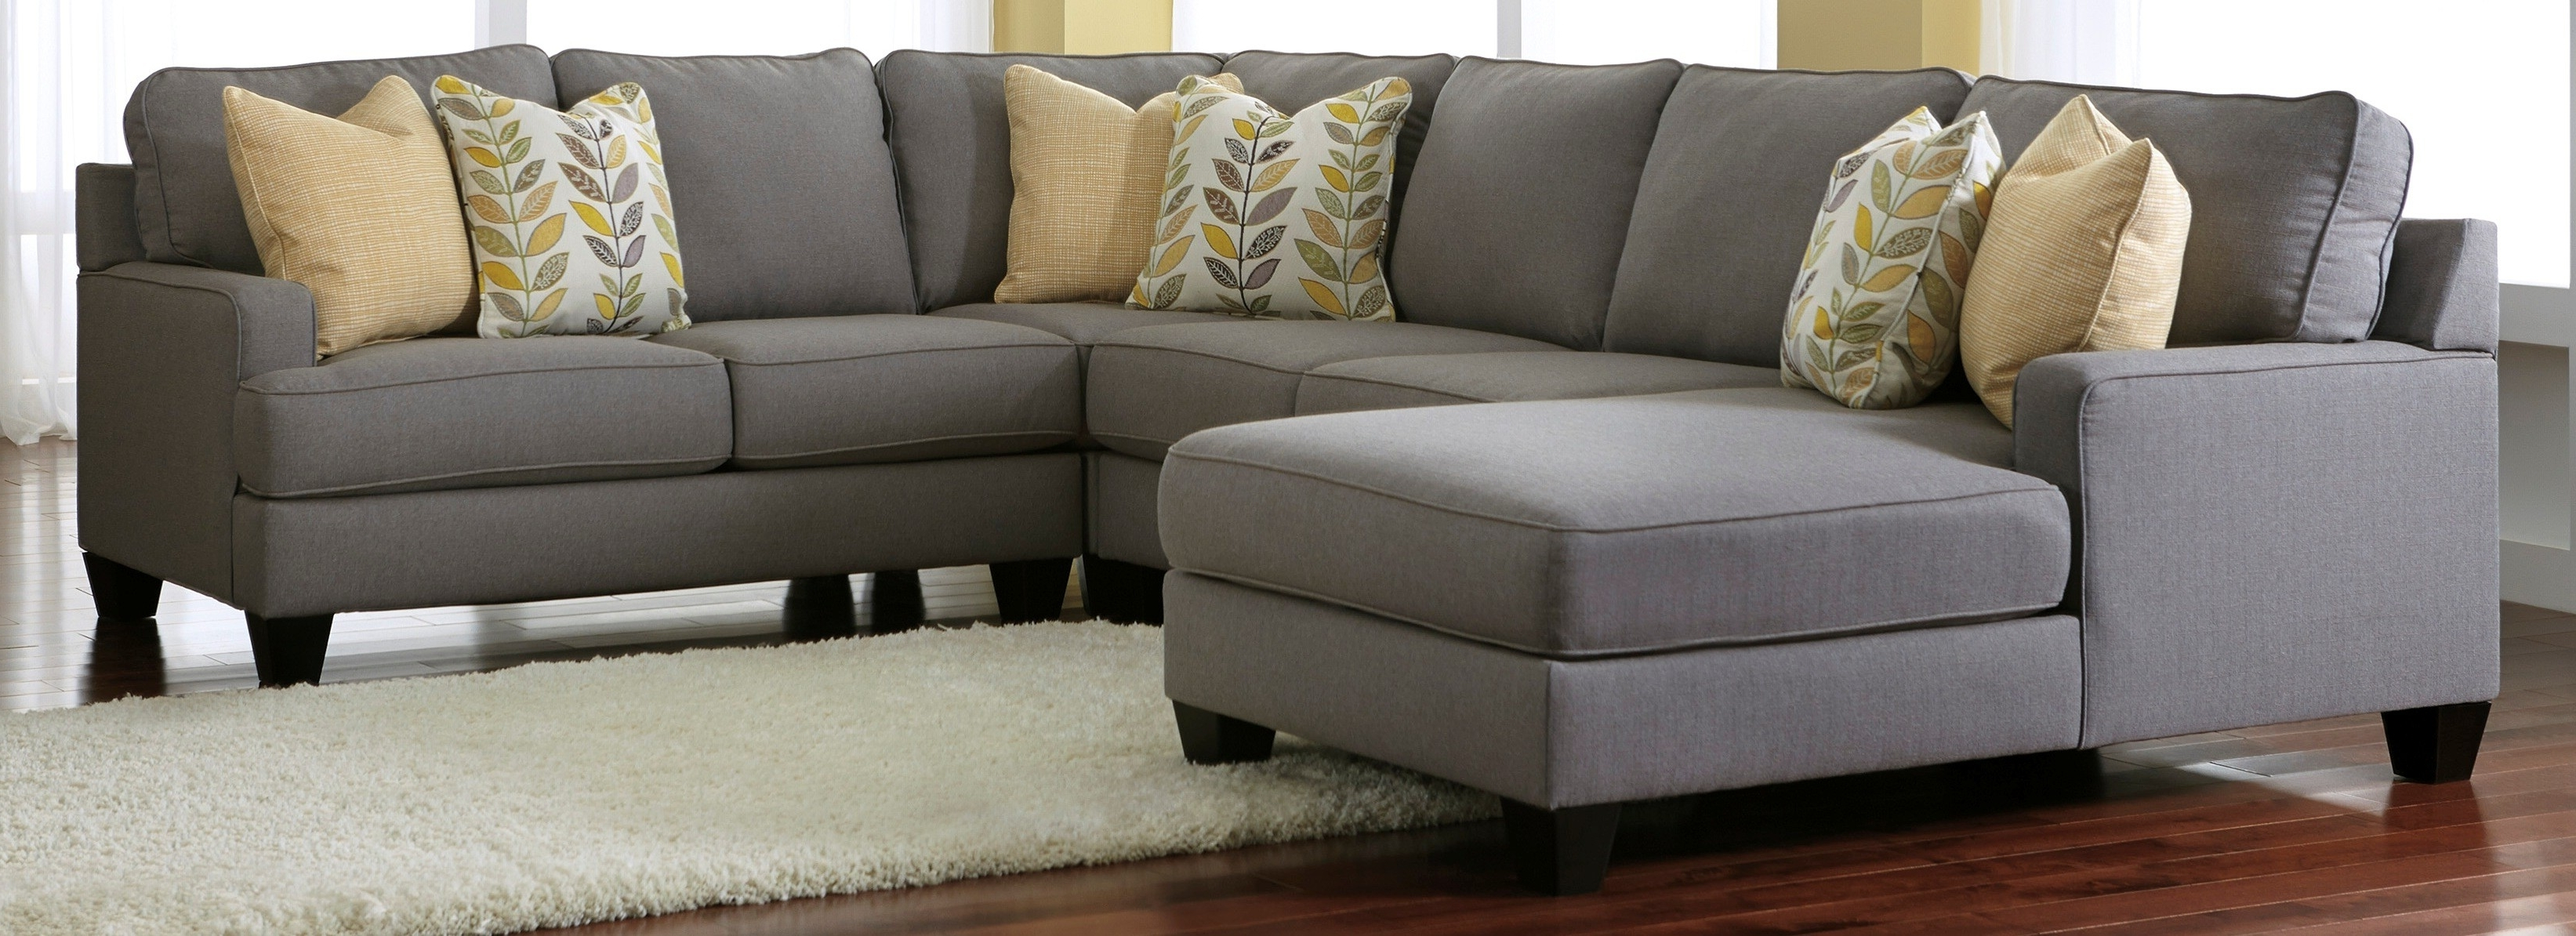 Recent Gray Sectionals With Chaise For Stunning Gray Sectional Sofas With Chaise Photos – Liltigertoo (View 4 of 15)